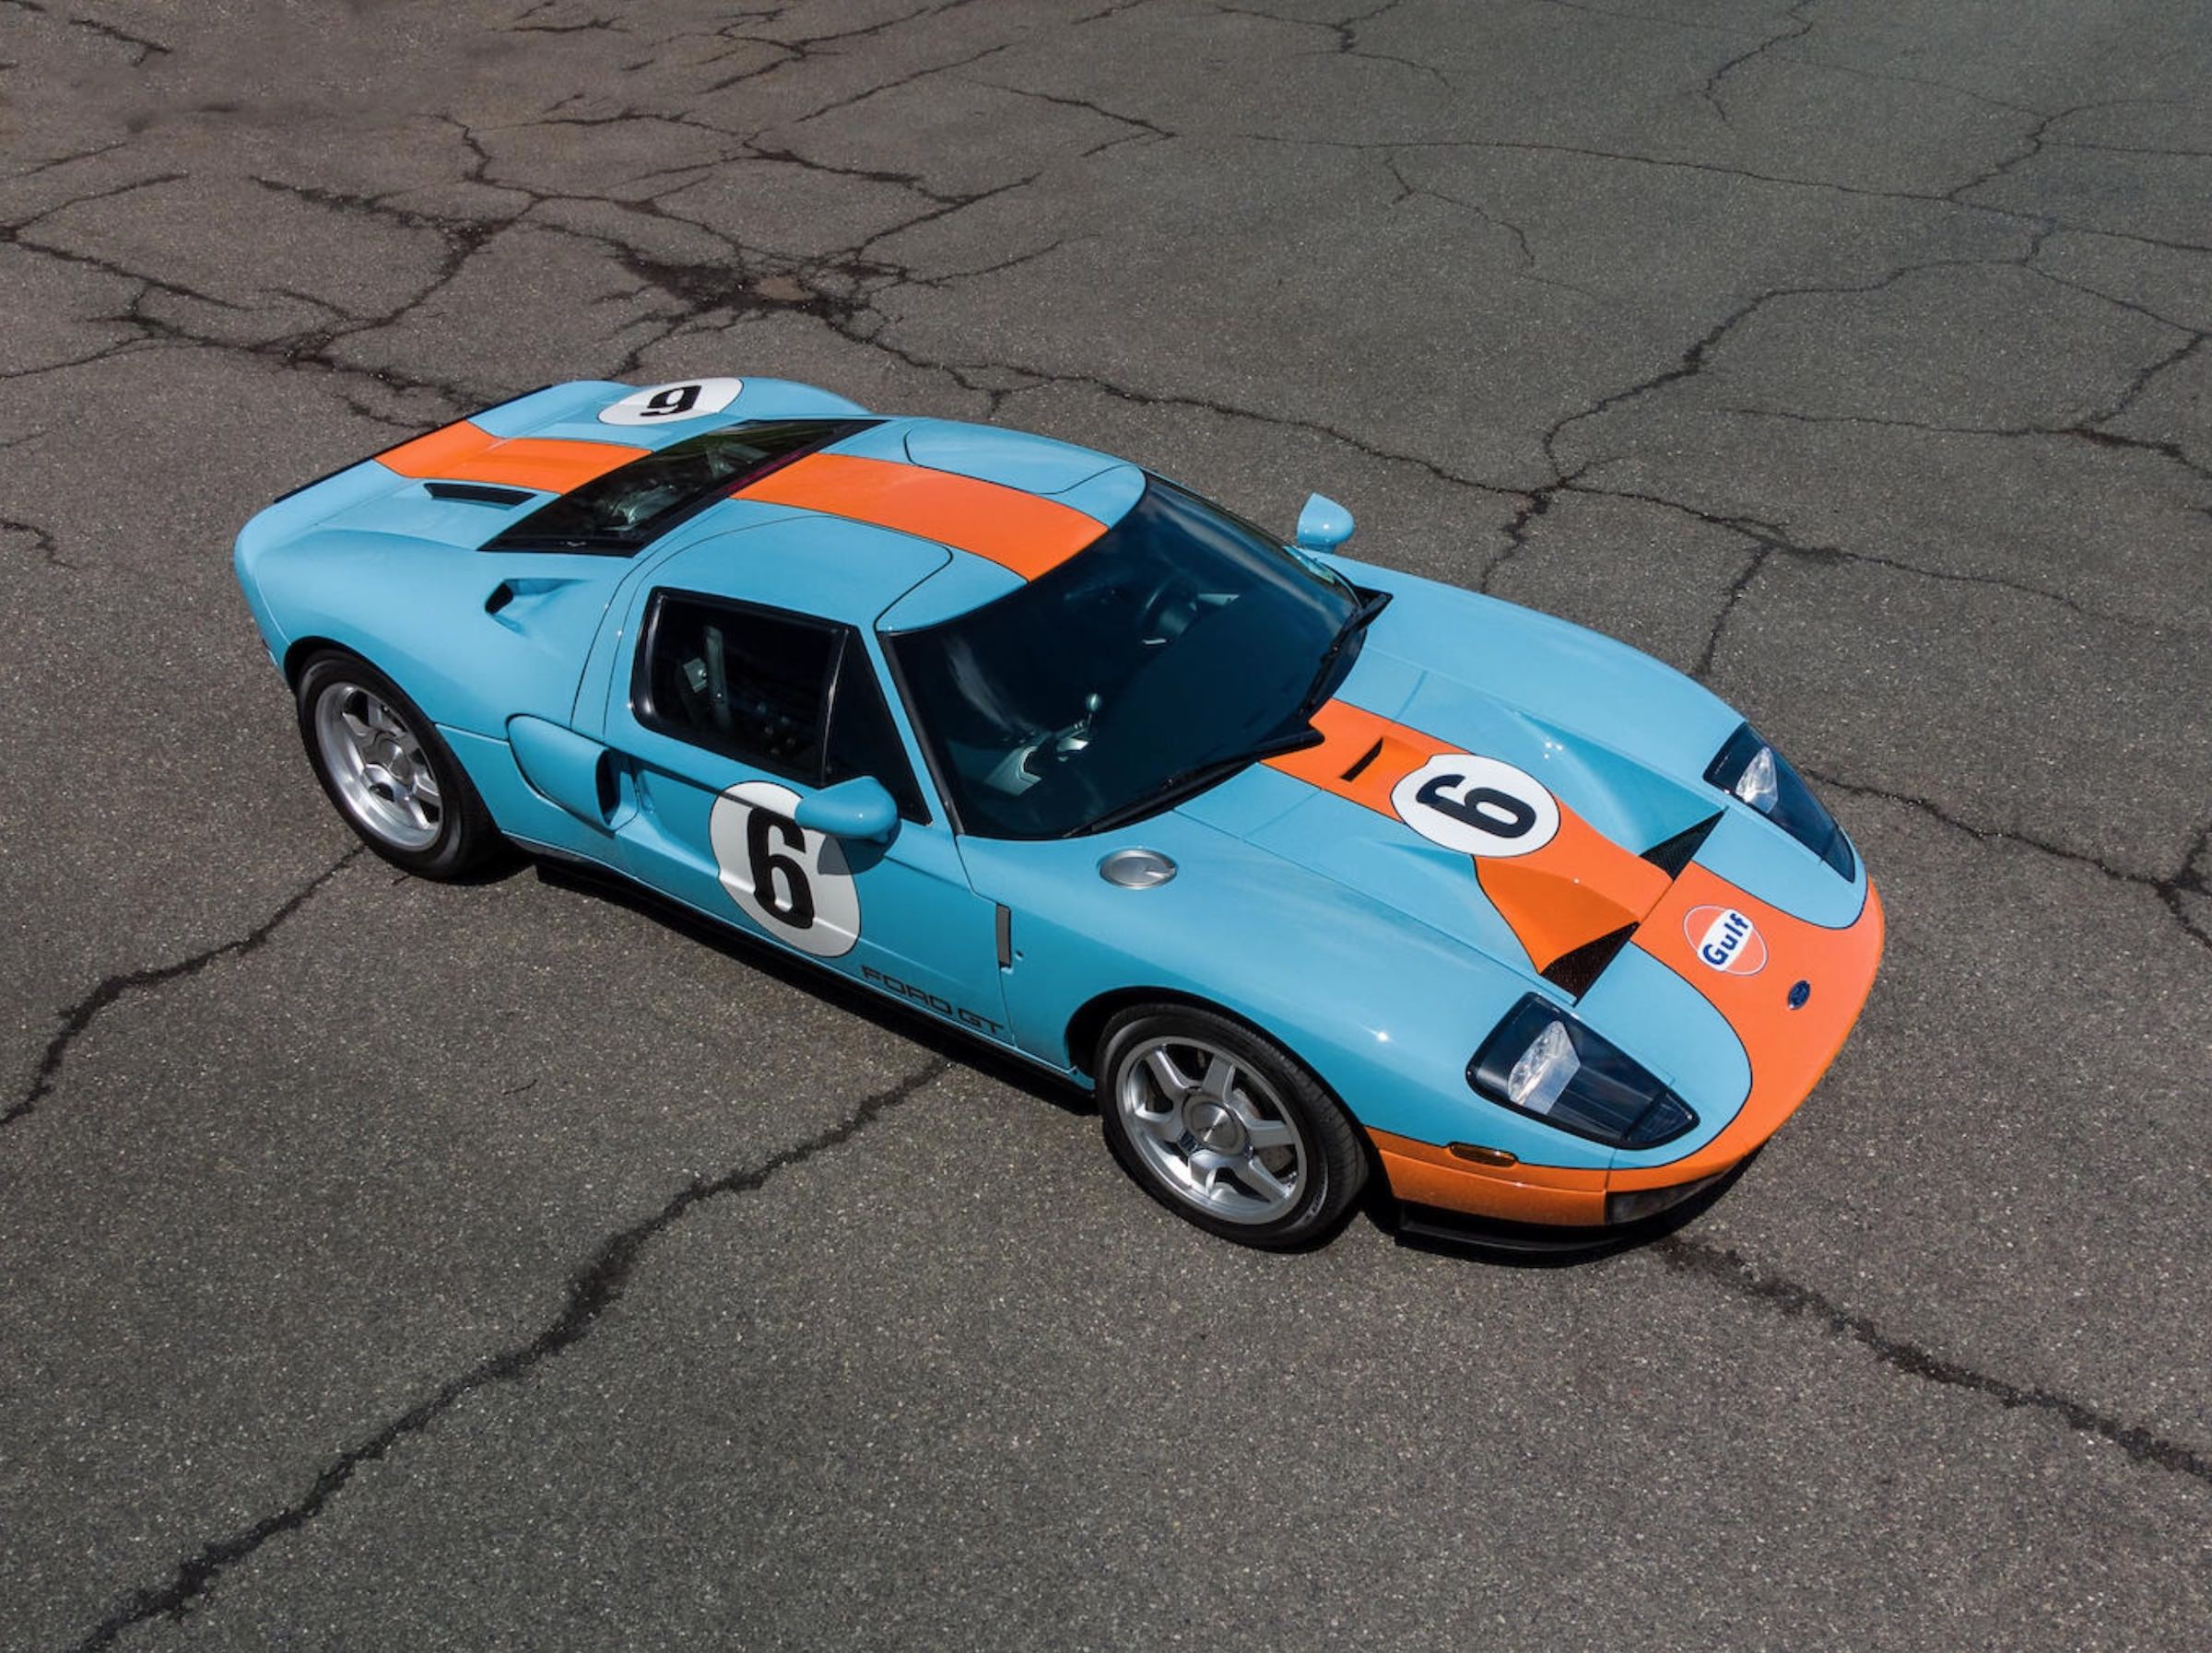 2006 Ford Gt Heritage Edition The American Supercar